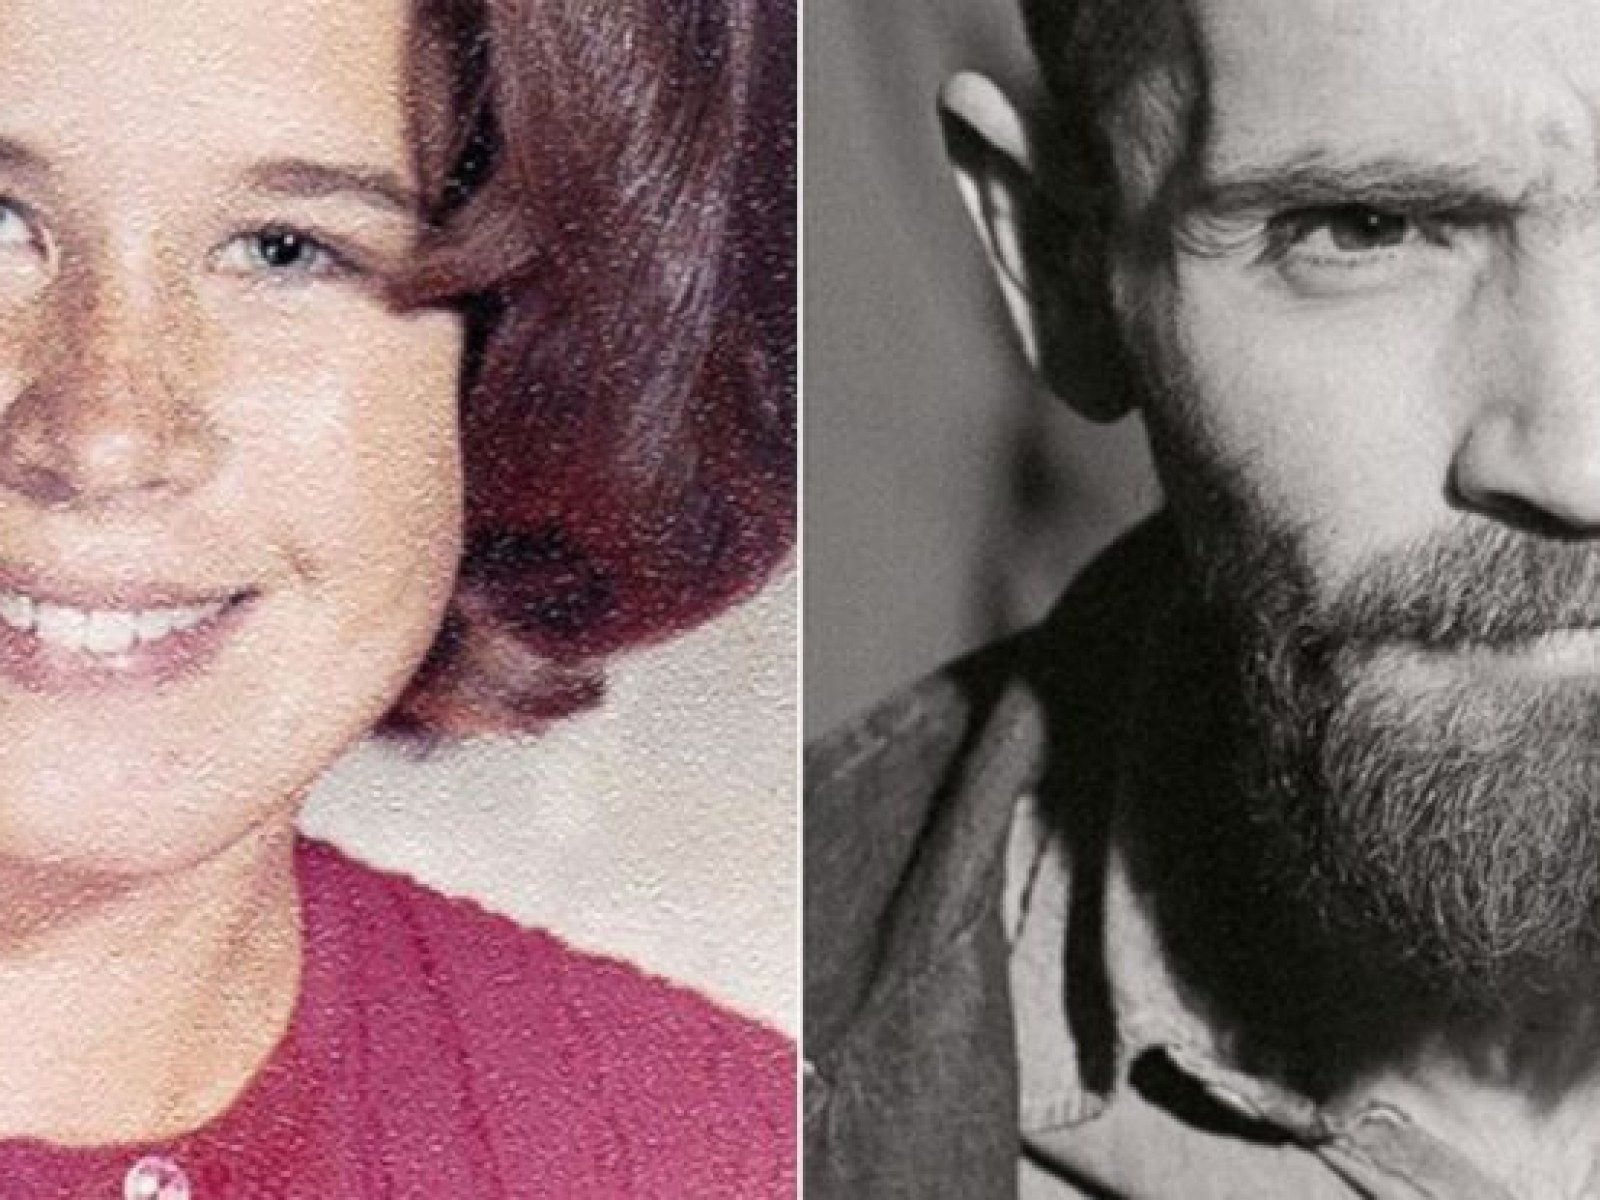 Charles Manson's Youngest Cult Follower, Dianne Lake, Goes